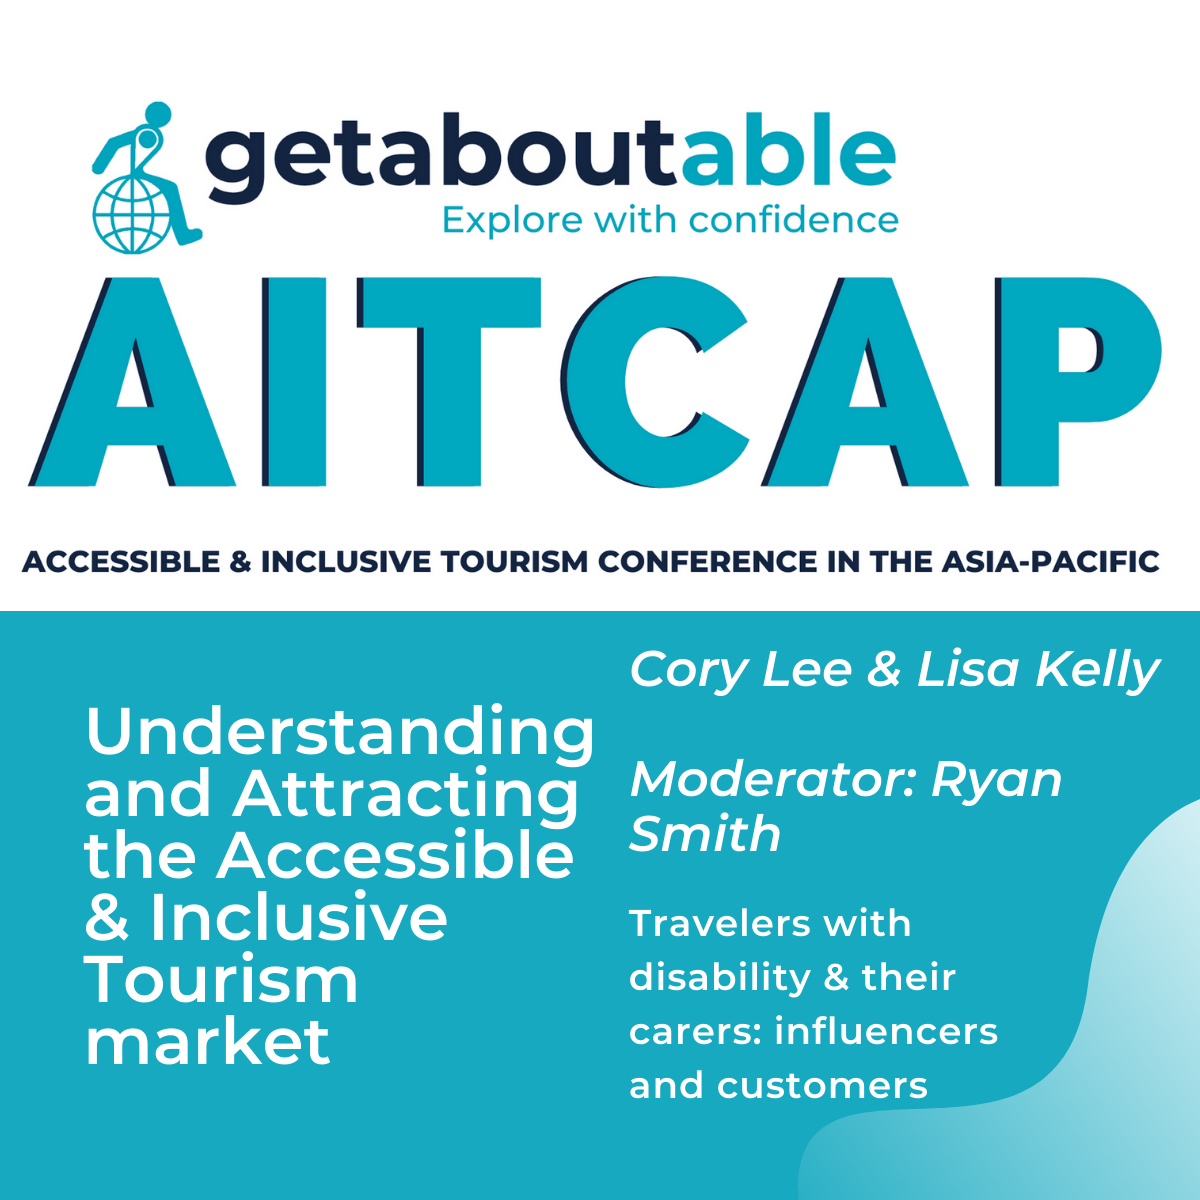 Panel discussion AITCAP Travellers with disability and their carers Lisa Kelly Cory Lee Ryan Smith